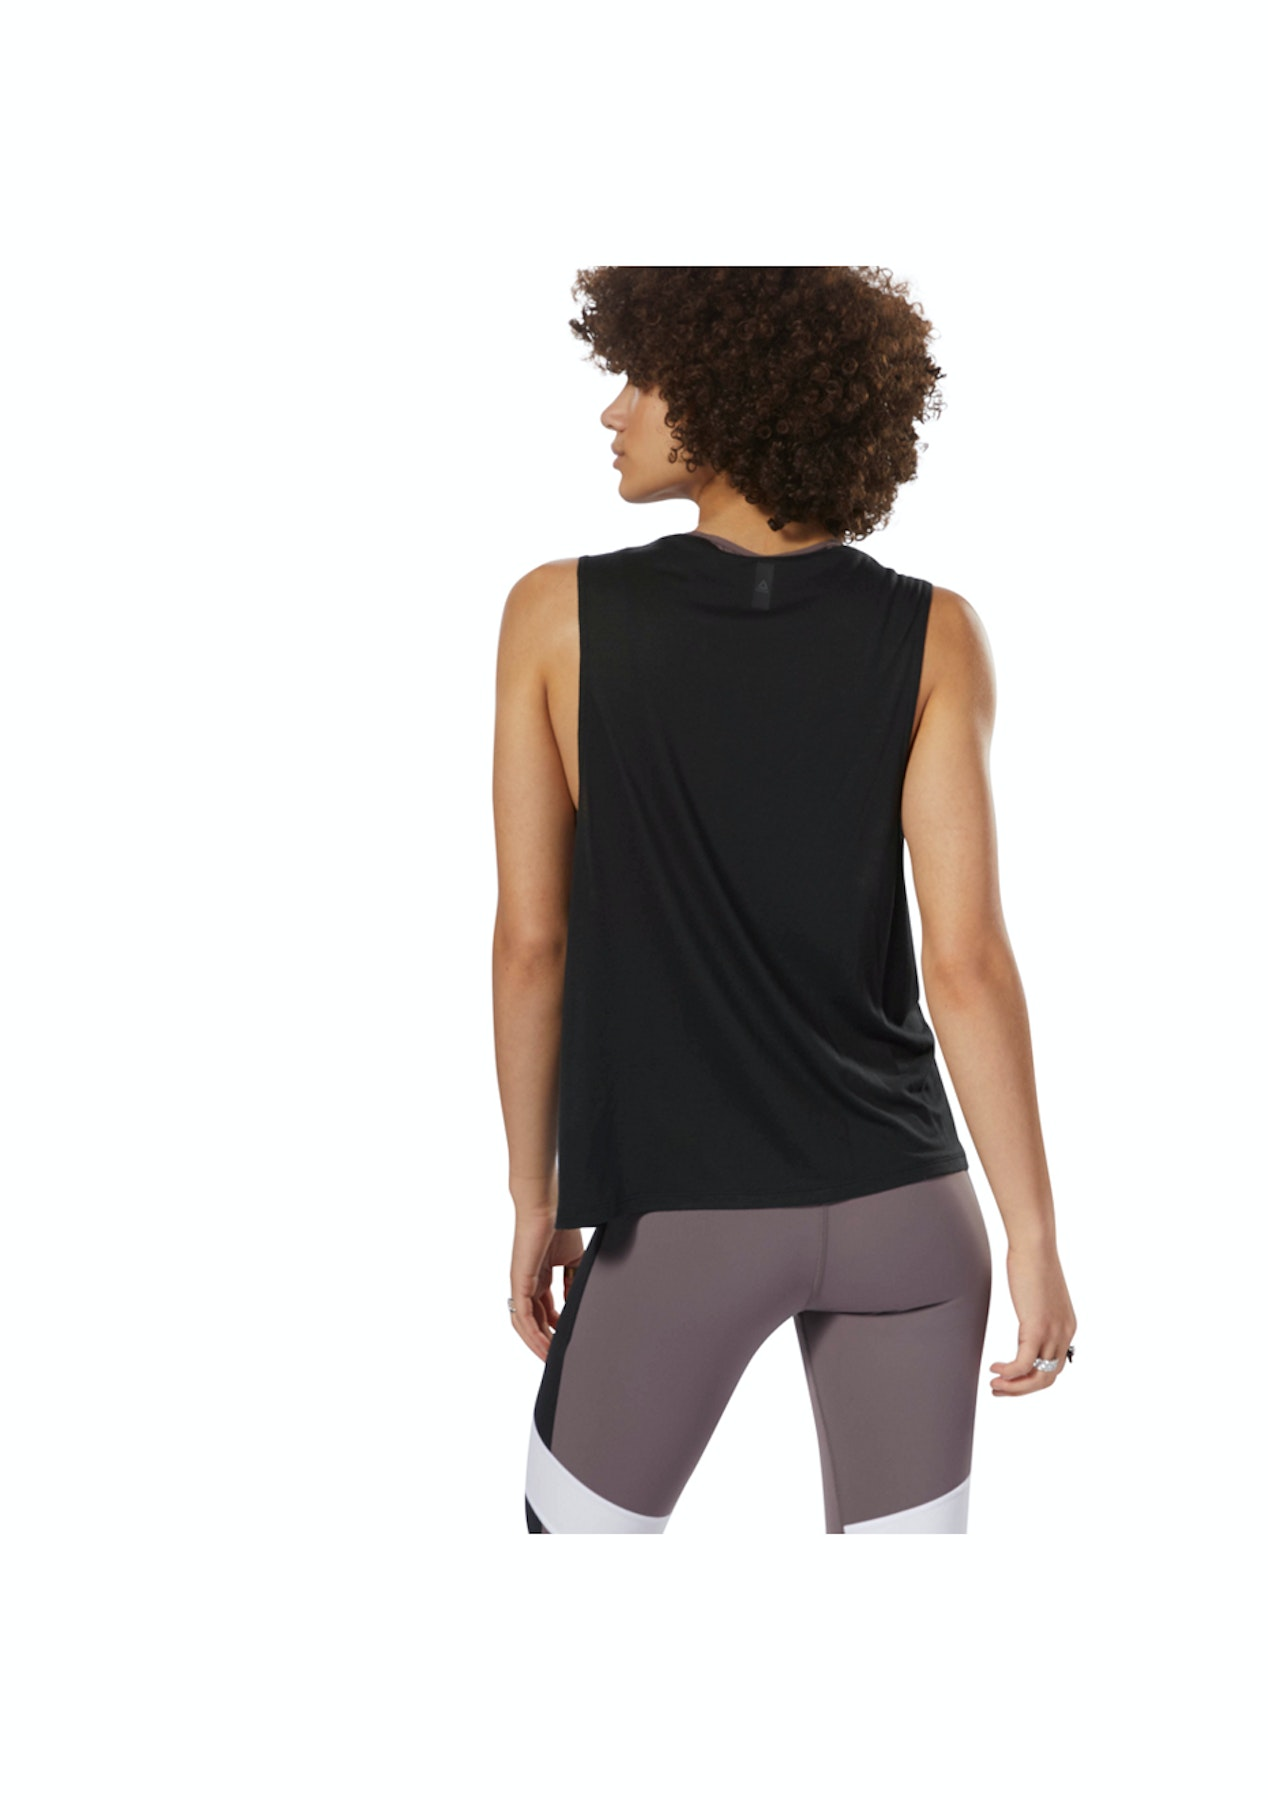 ee445f61 Reebok Womens - Ts Muscle Tank -Gra Black - Big Brand Activewear Price drop  - Onceit